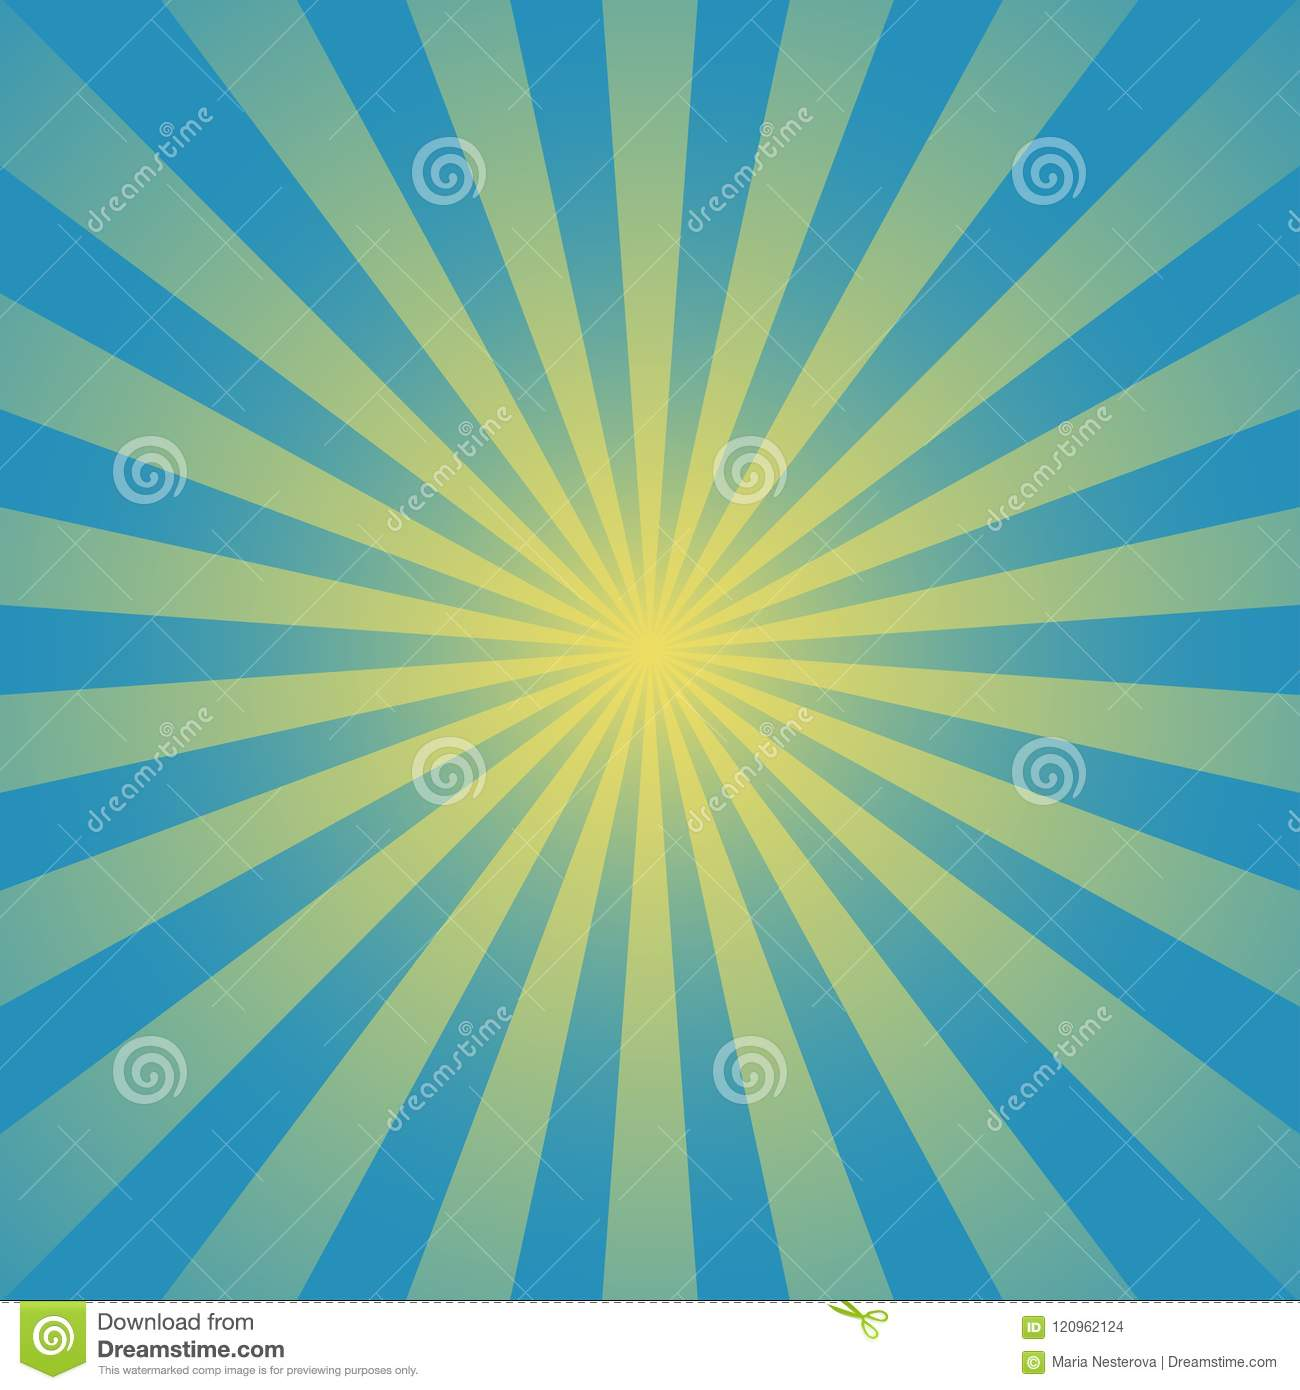 Sunlight Background. Turquoise And Blue Color Burst Background With ...